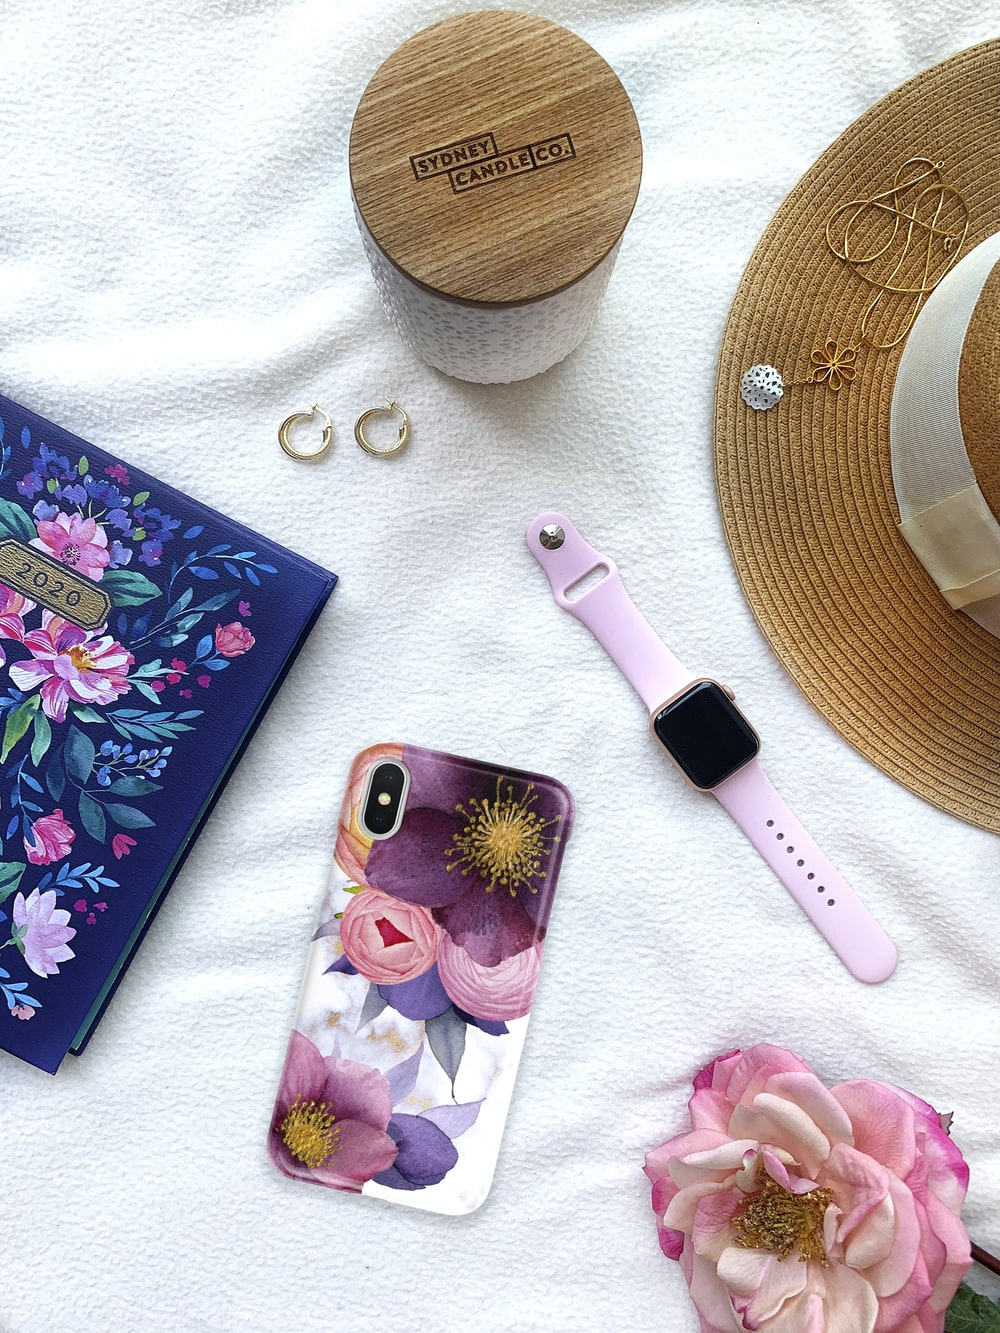 pink and black hair brush beside purple and white floral iphone case